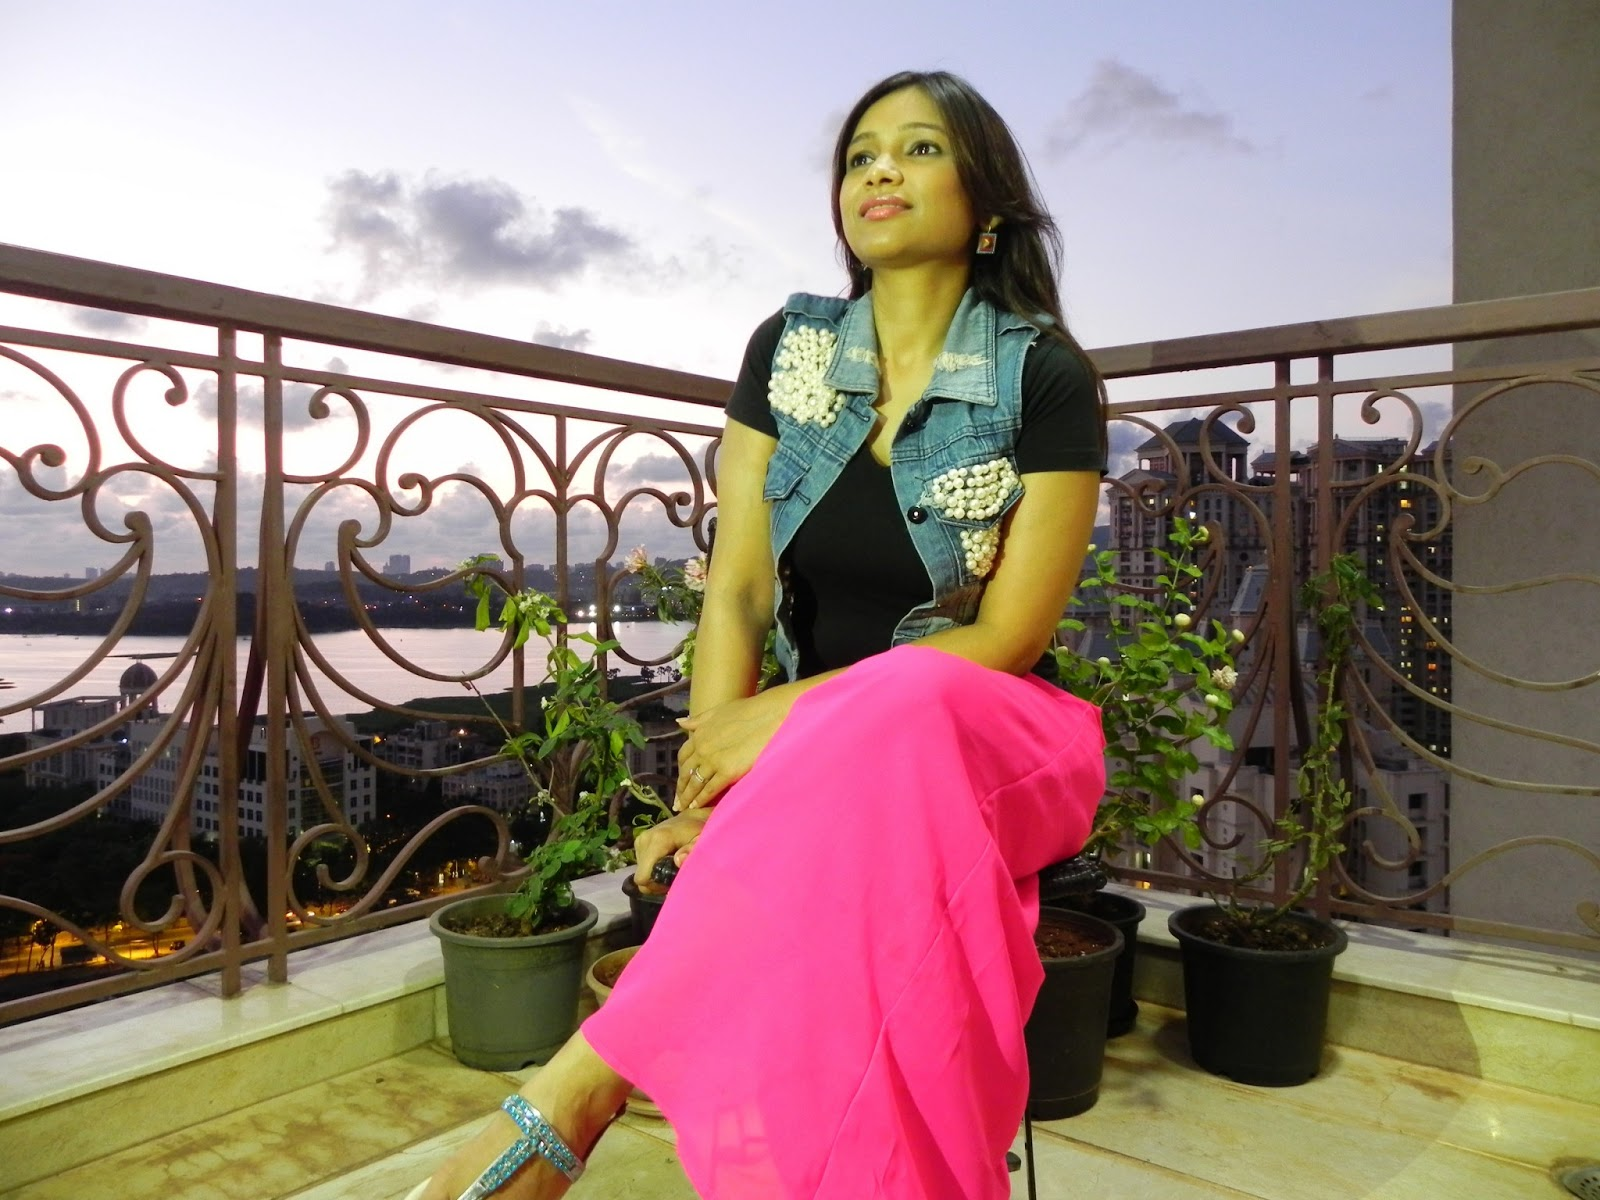 f292353fca2 Ri(t)ch Styles : Indian Fashion, Beauty, Lifestyle and Mommyhood ...